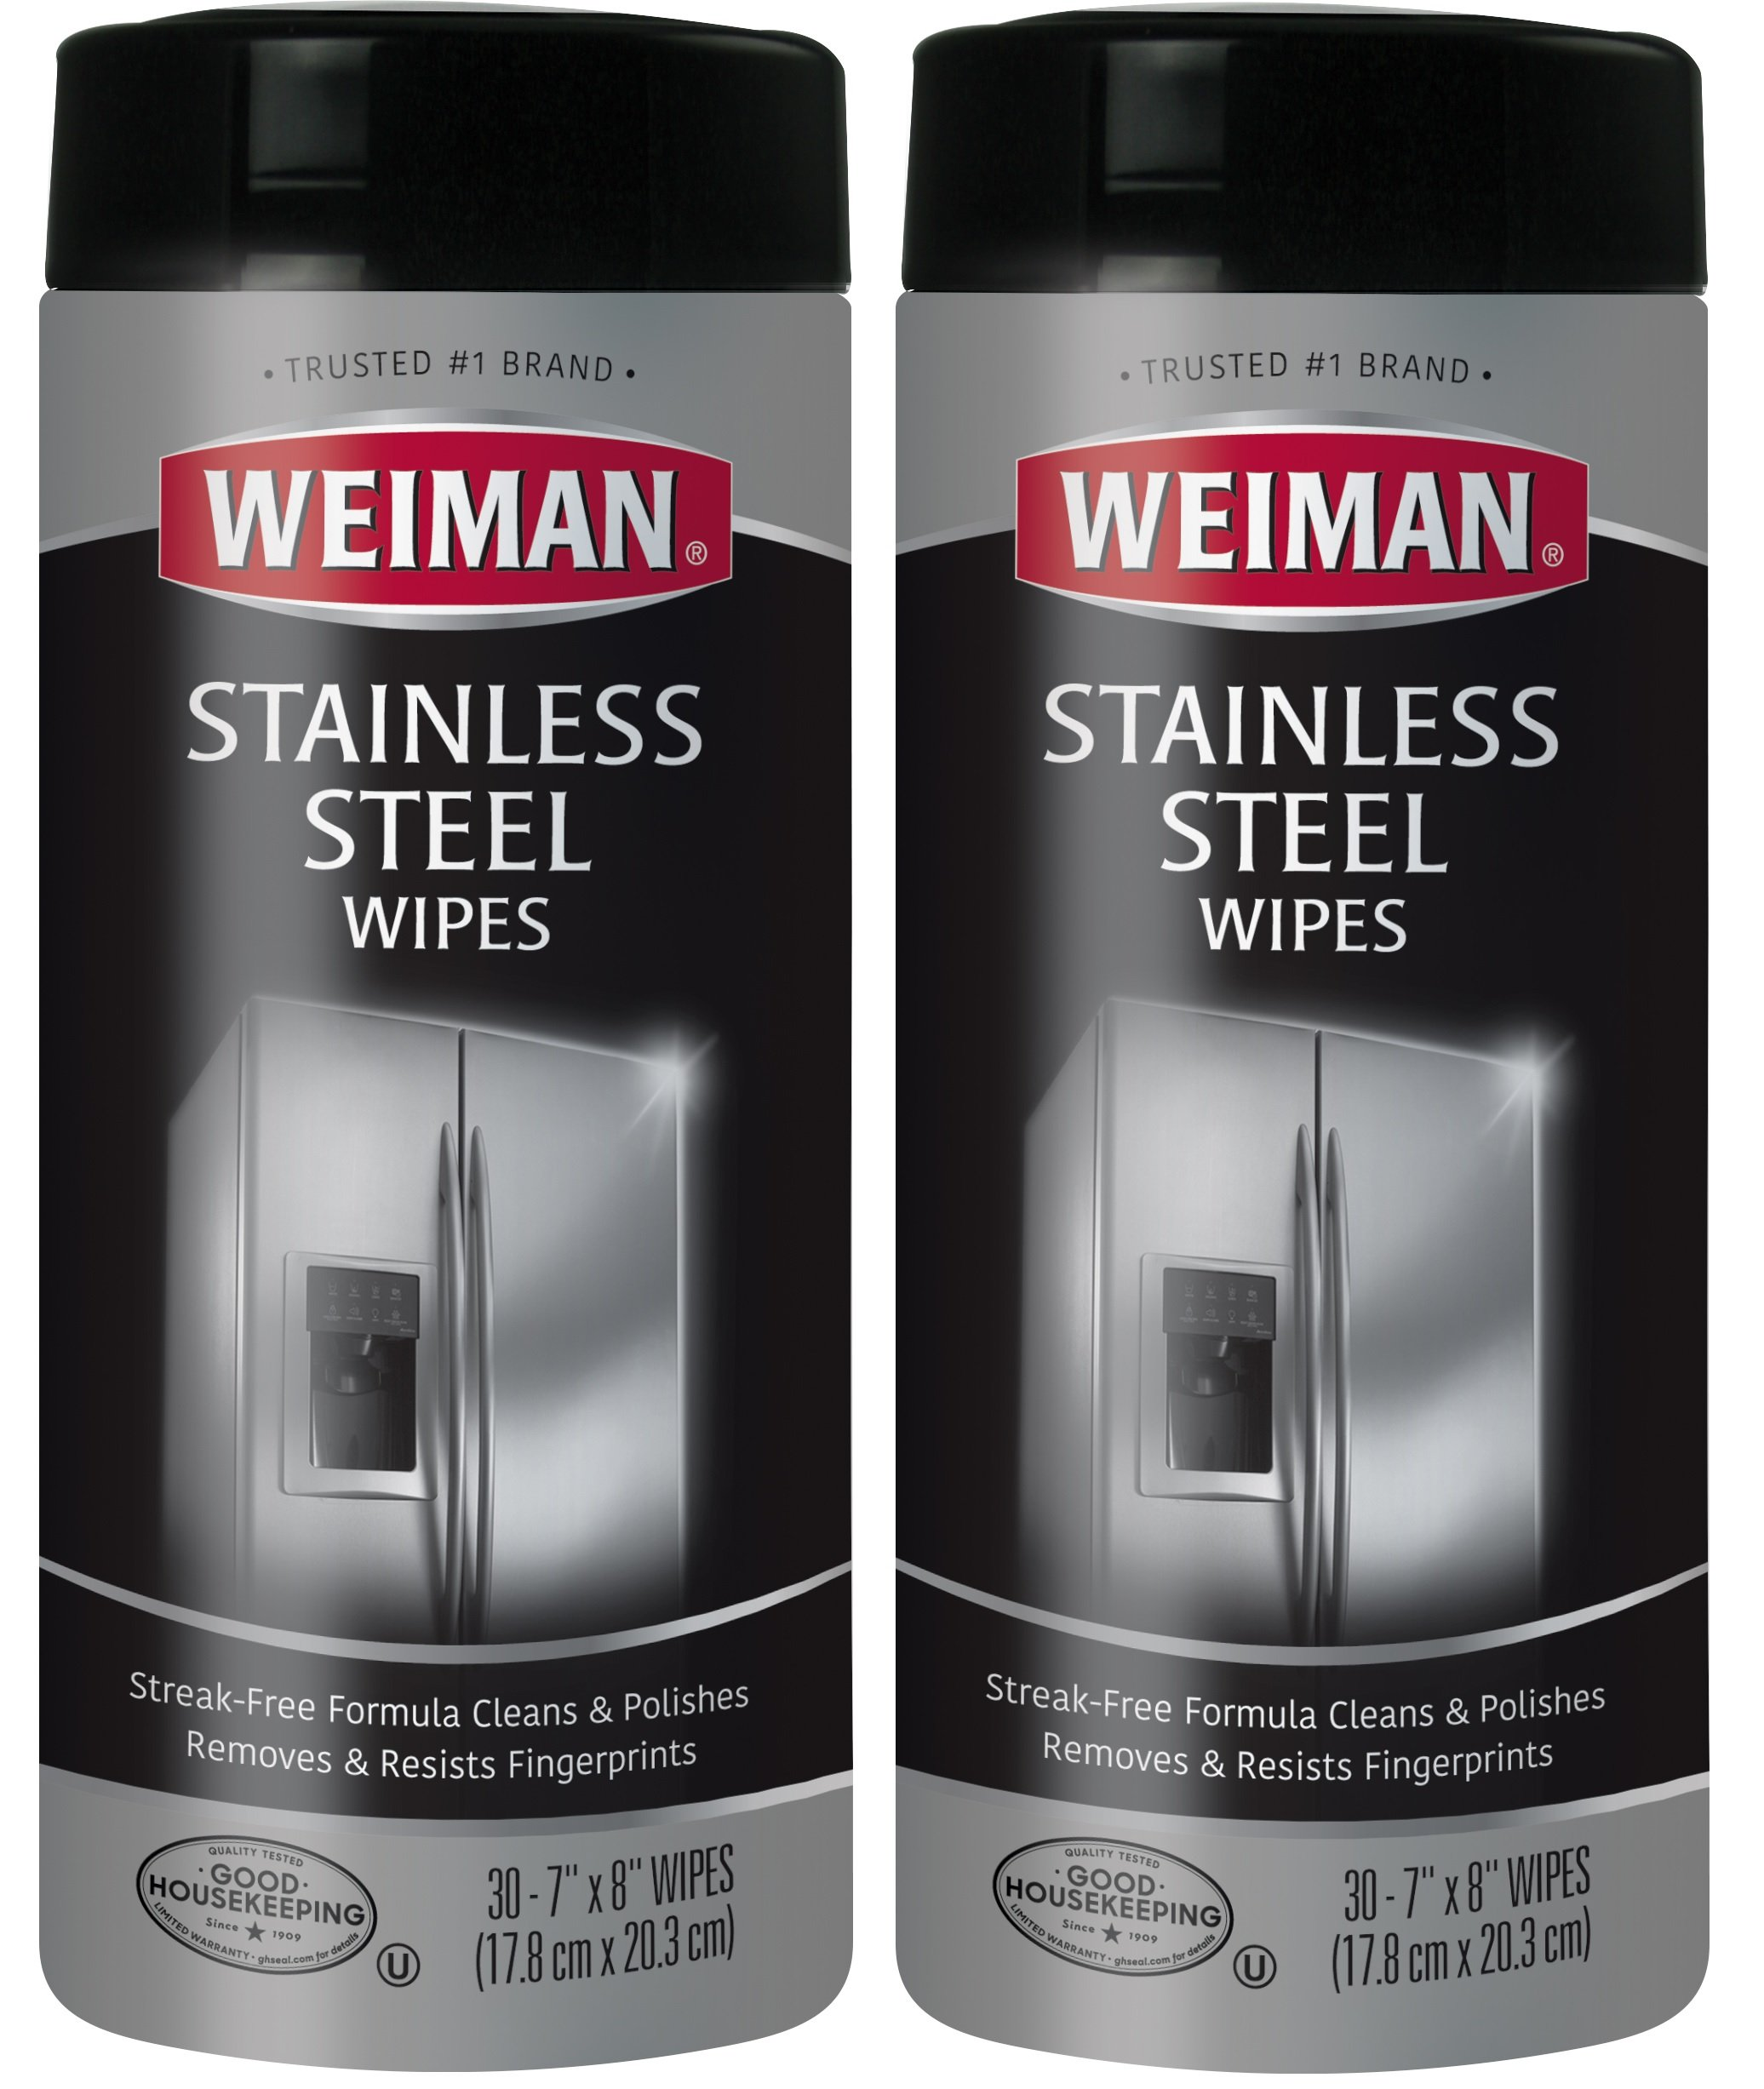 Weiman Stainless Steel Cleaning Wipes - Removes Fingerprints, Residue, Water Marks and Grease From Appliances - Works Great on Refrigerators, Dishwashers, Ovens, Grills and More - 30 Count (2 Pack) by Weiman